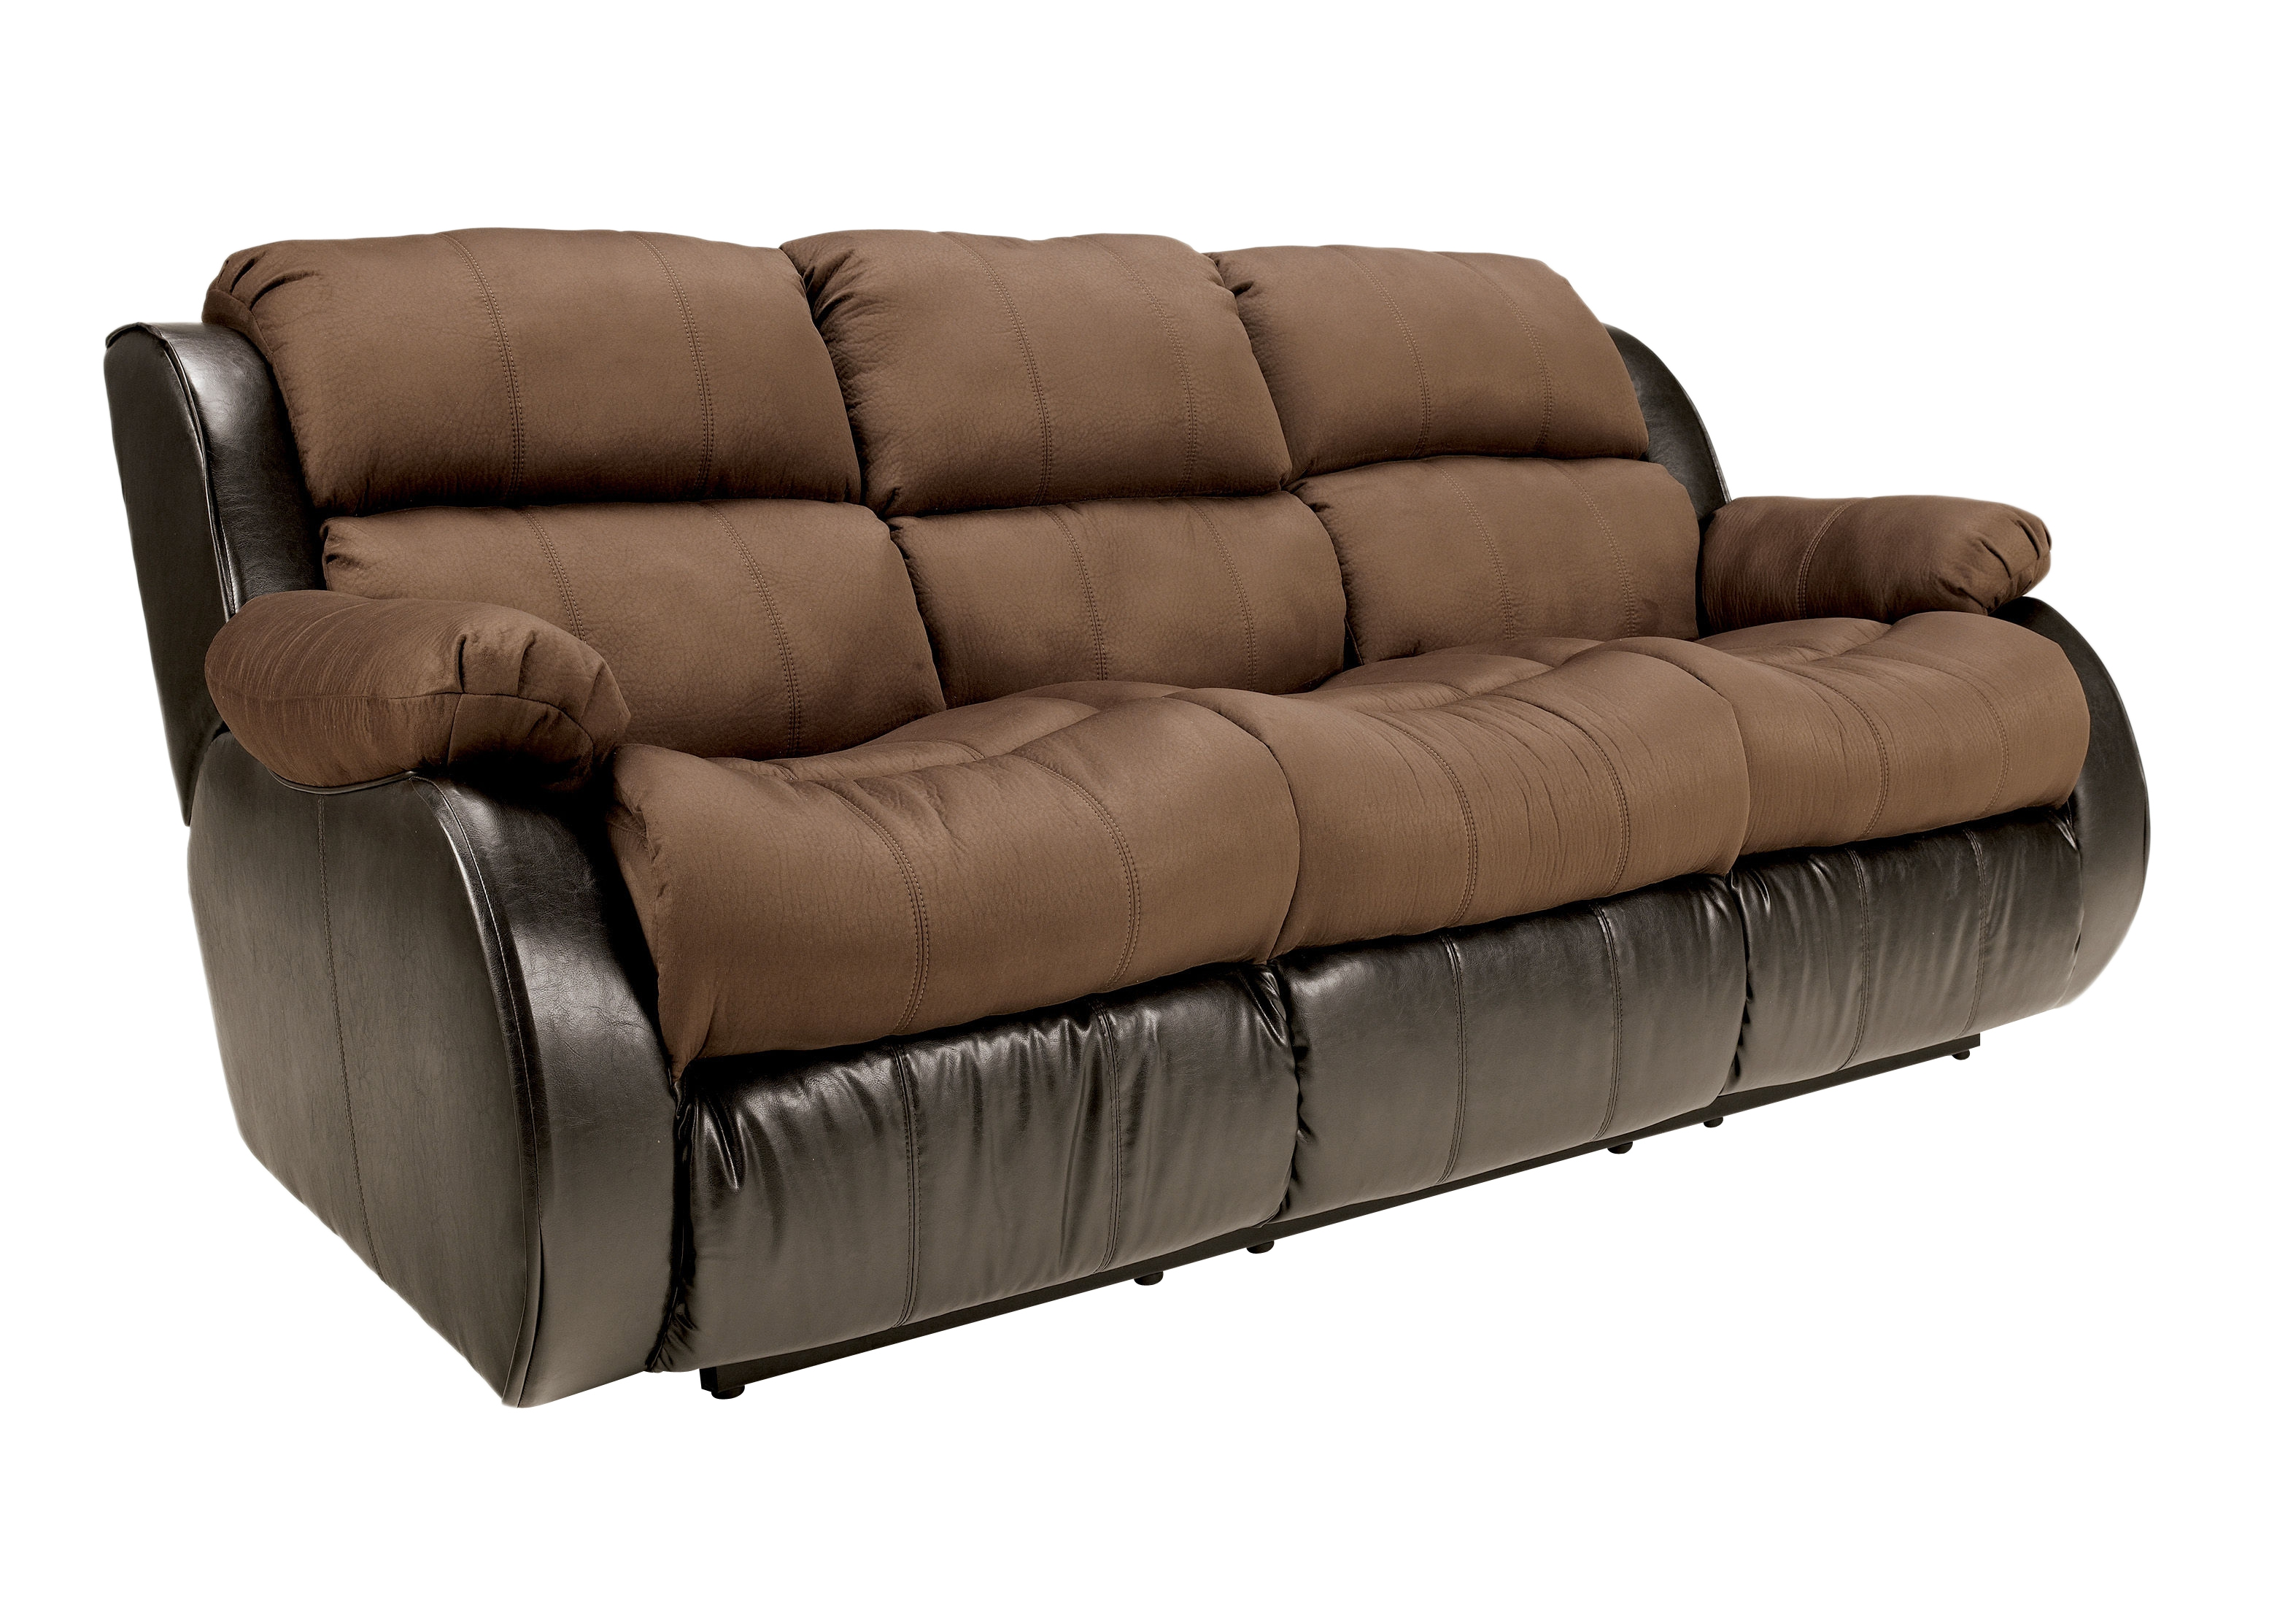 Presley Reclining Sofa Review Home Co